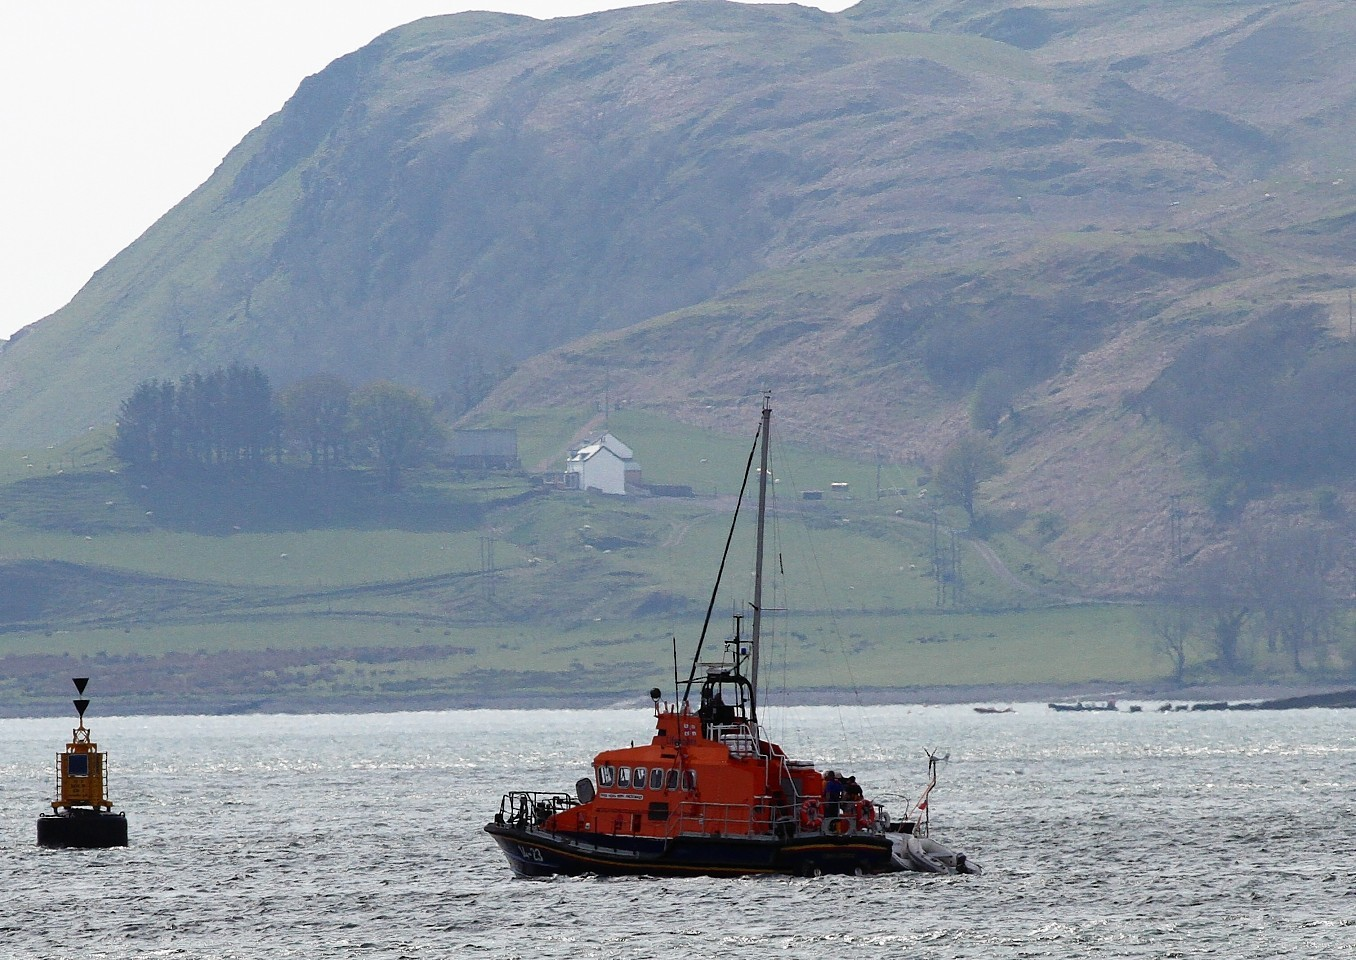 Oban lifeboat has had a busy day, following three call-outs